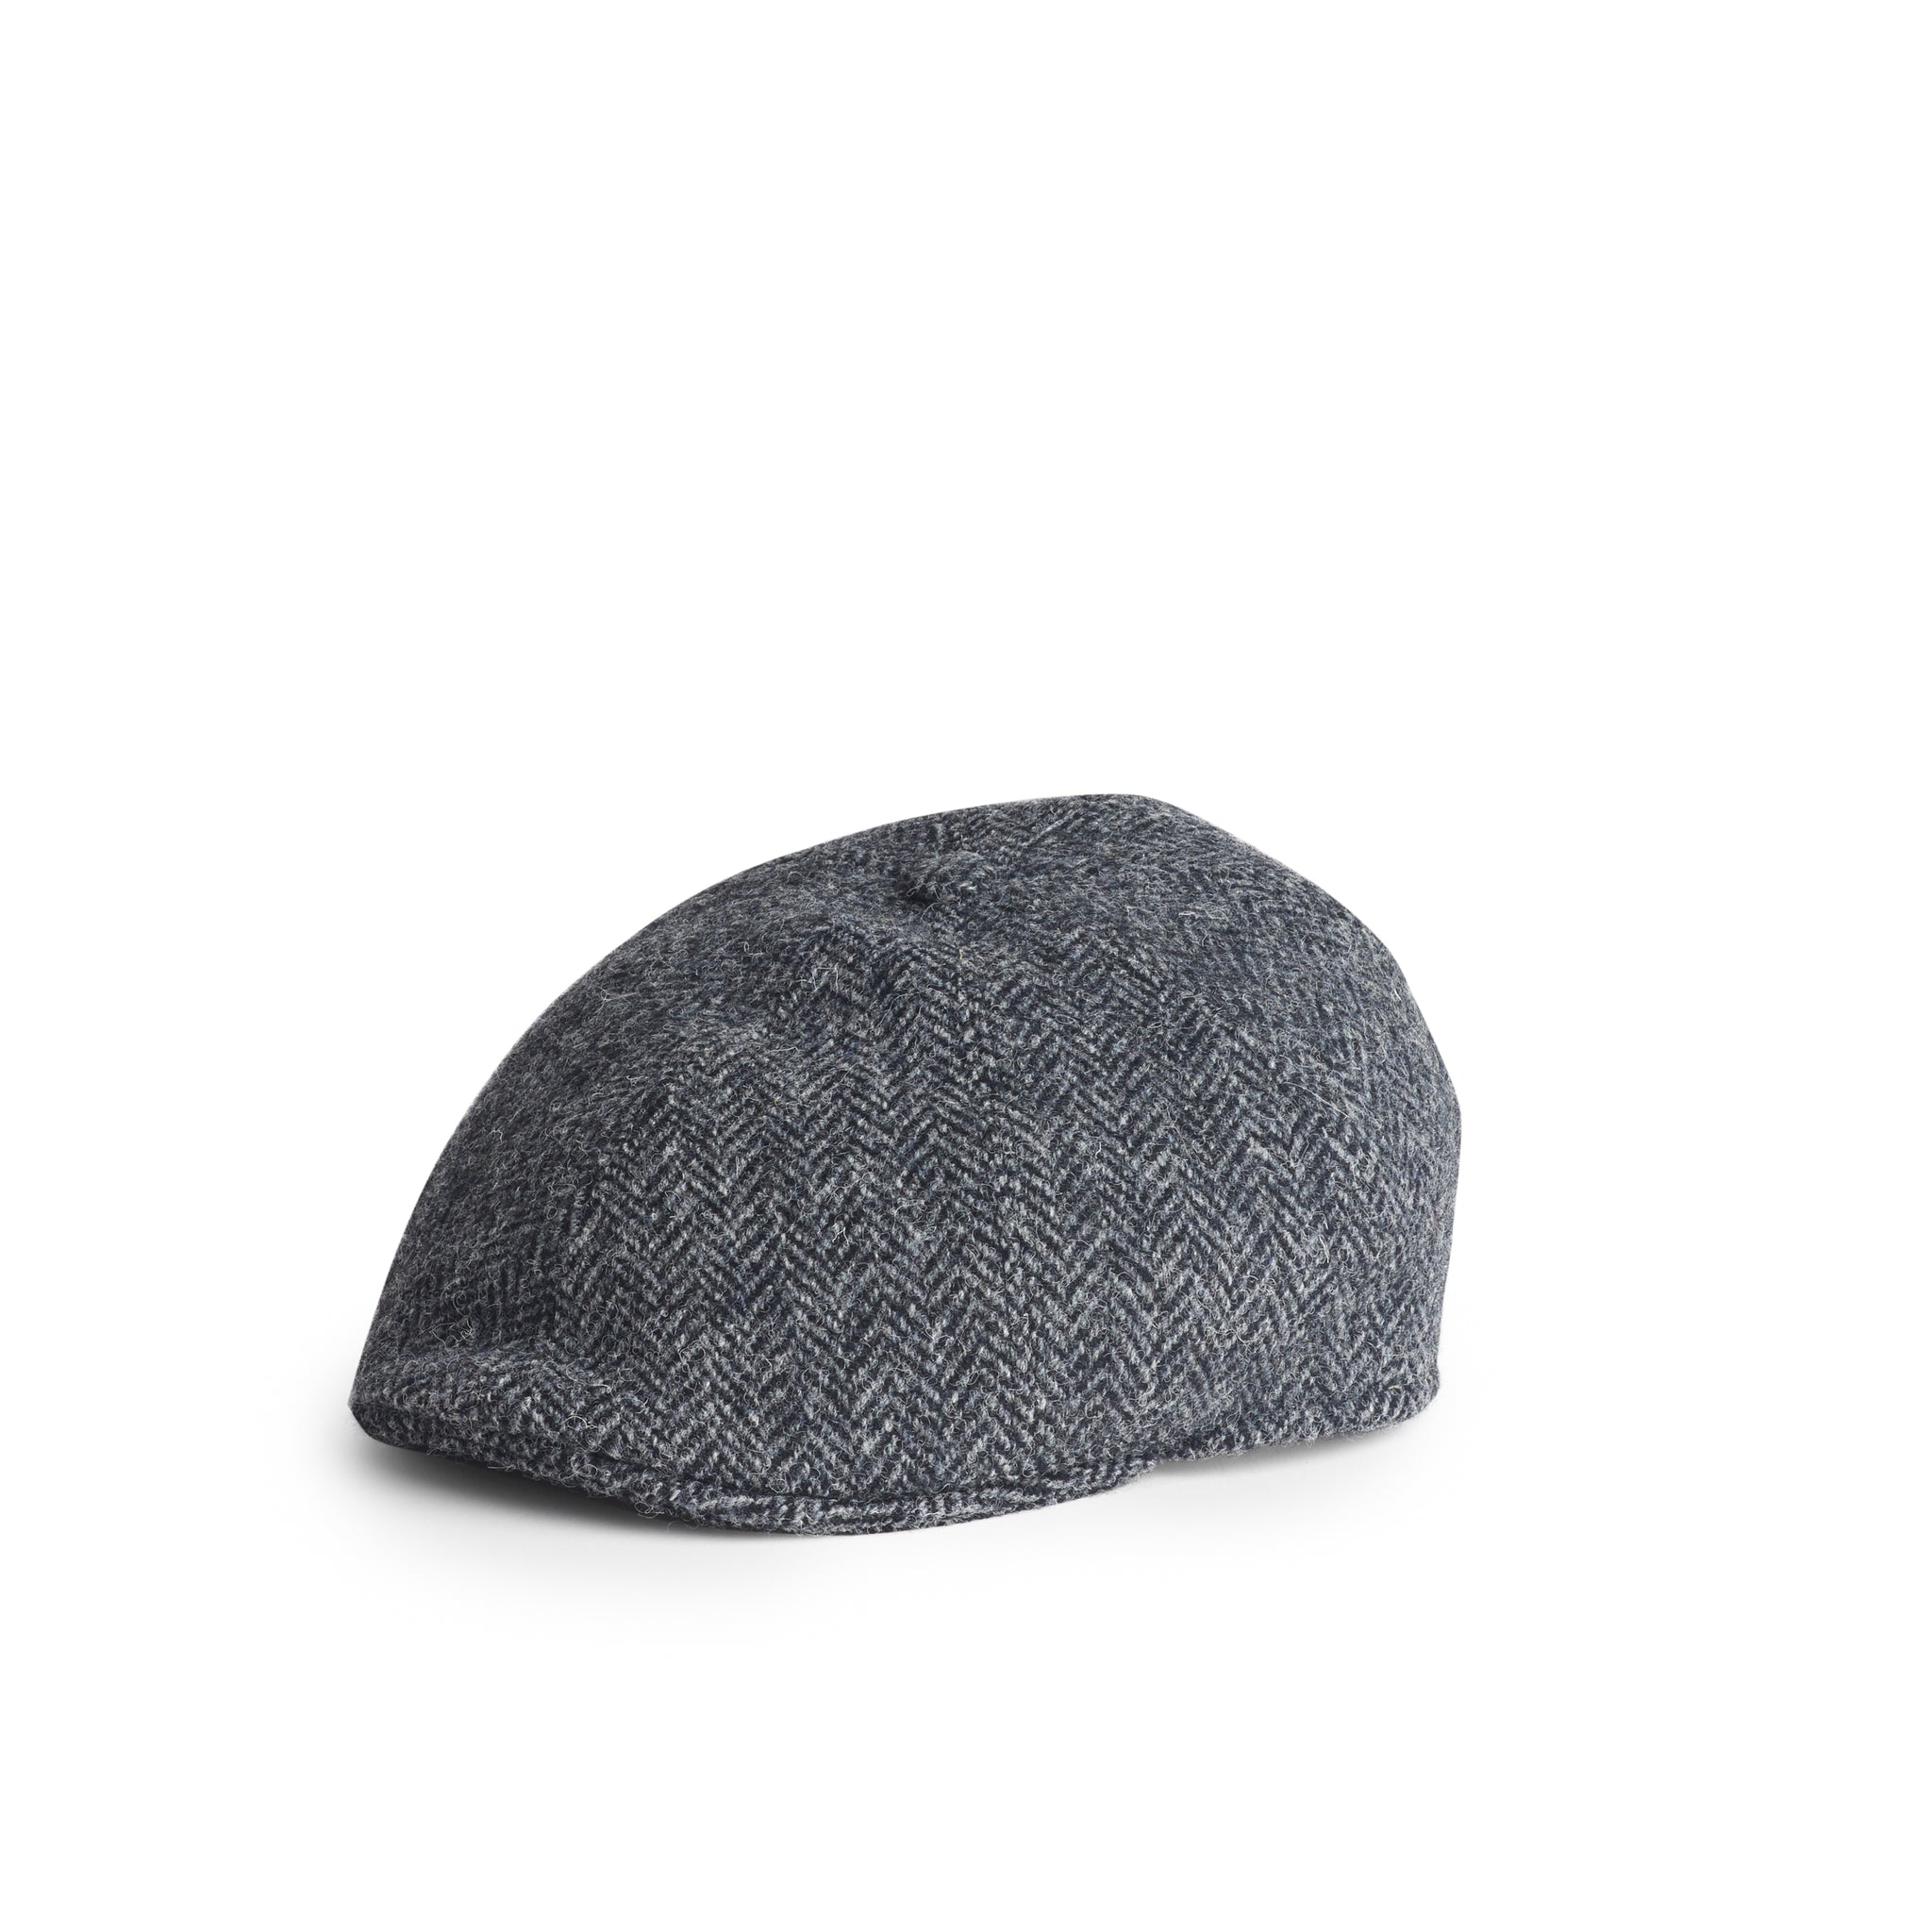 Gorra Henry Harris Tweed Herringbone gris